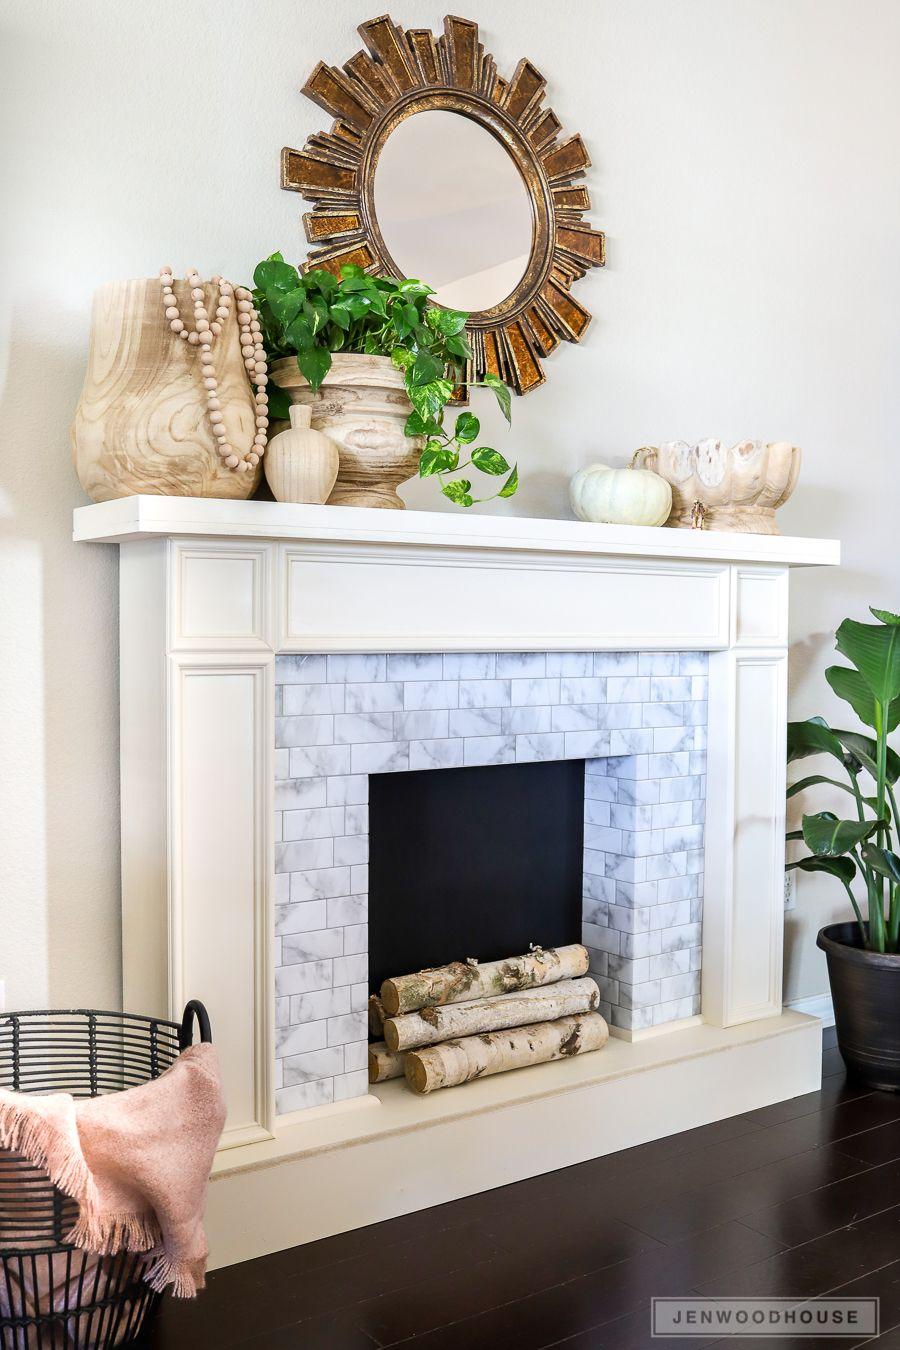 How To Make A DIY Faux Fireplace Featuring Smart Tiles